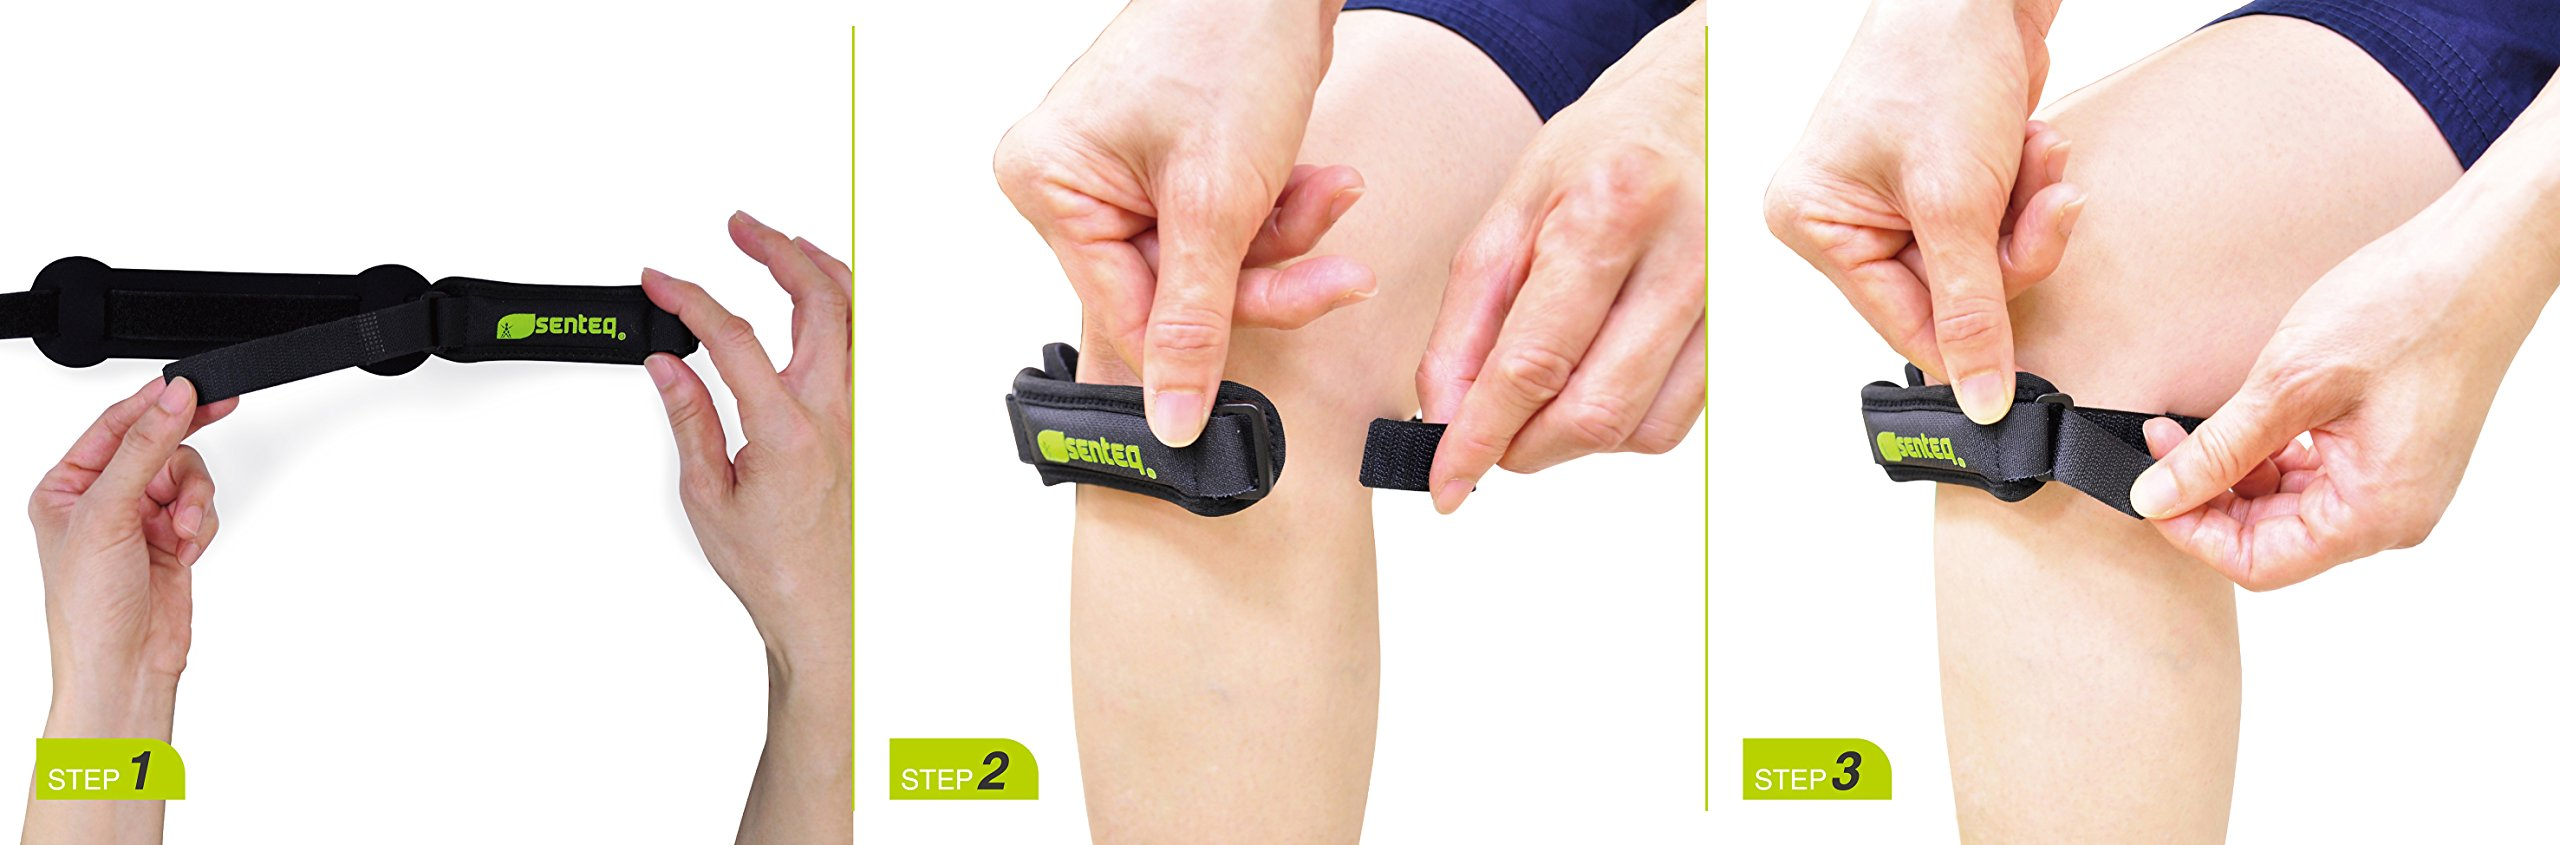 SENTEQ Knee Strap Support Brace - Medical Grade and FDA Approved. Adjustable Patella Knee Support to Prevent Pain and Tendinitis (2 piece) by SENTEQ (Image #2)